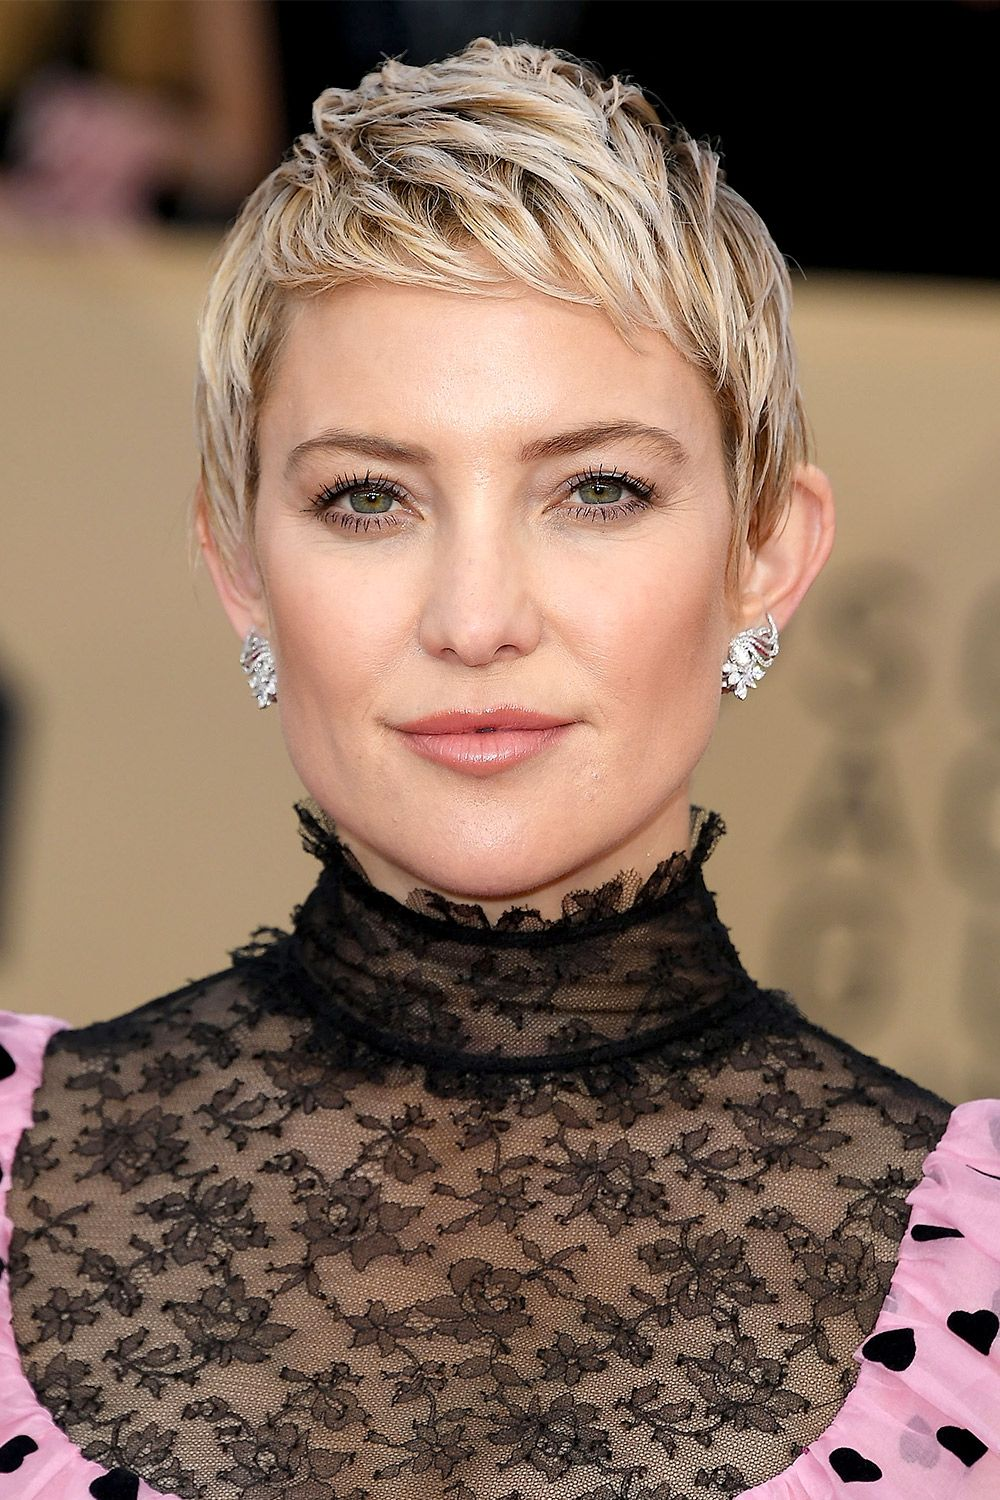 53 Best Pixie Cut Hairstyle Ideas 2018 Cute Celebrity Pixie Haircuts